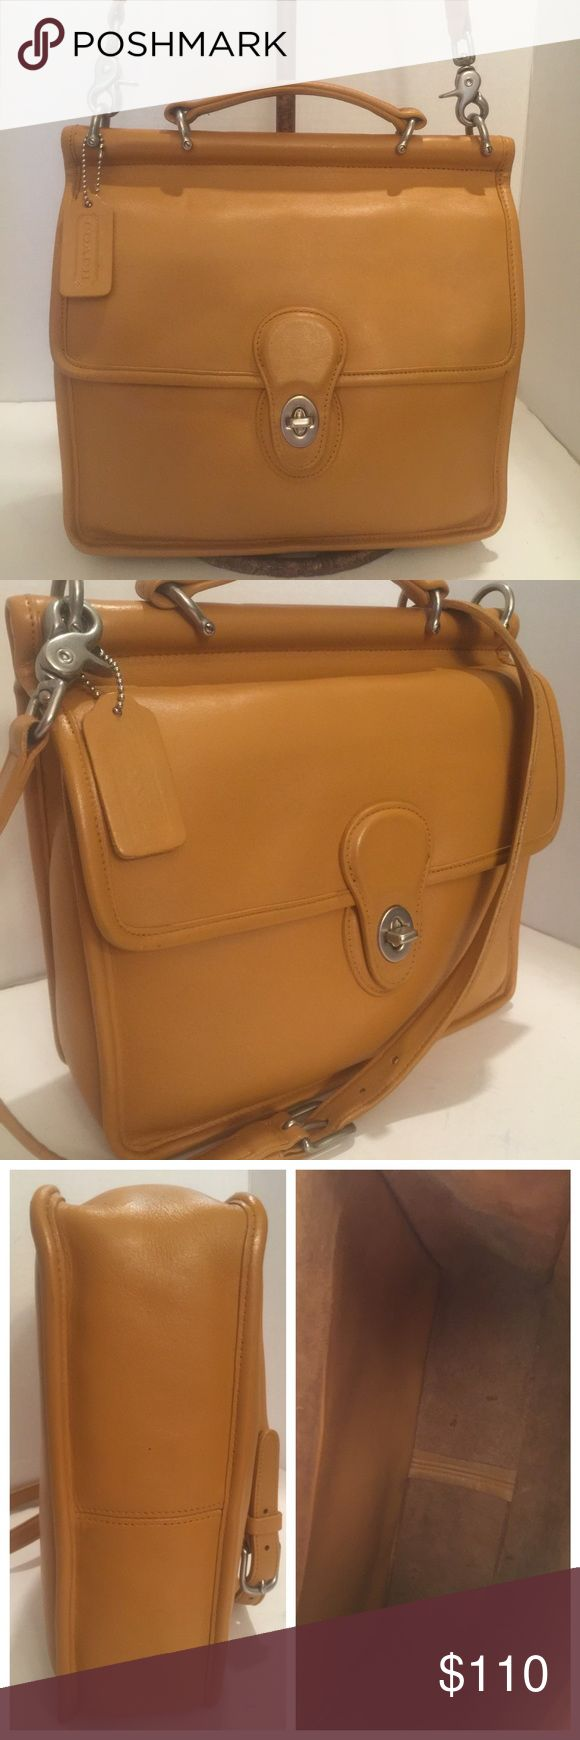 Authentic Classic Coach Willis Bag This is  Classic Willis in a Camel glove tanned leather and Nickel hardware. Excellent restored condition. This bag has a top handle as well as an adjustable crossbody strap. Full slip pocket on the back of the bag as well as under the flap. Inside has an amazing amount of space and has another pocket with a zipper for privacy. Made in Costa Rica #M1P-9927 Coach Bags Crossbody Bags